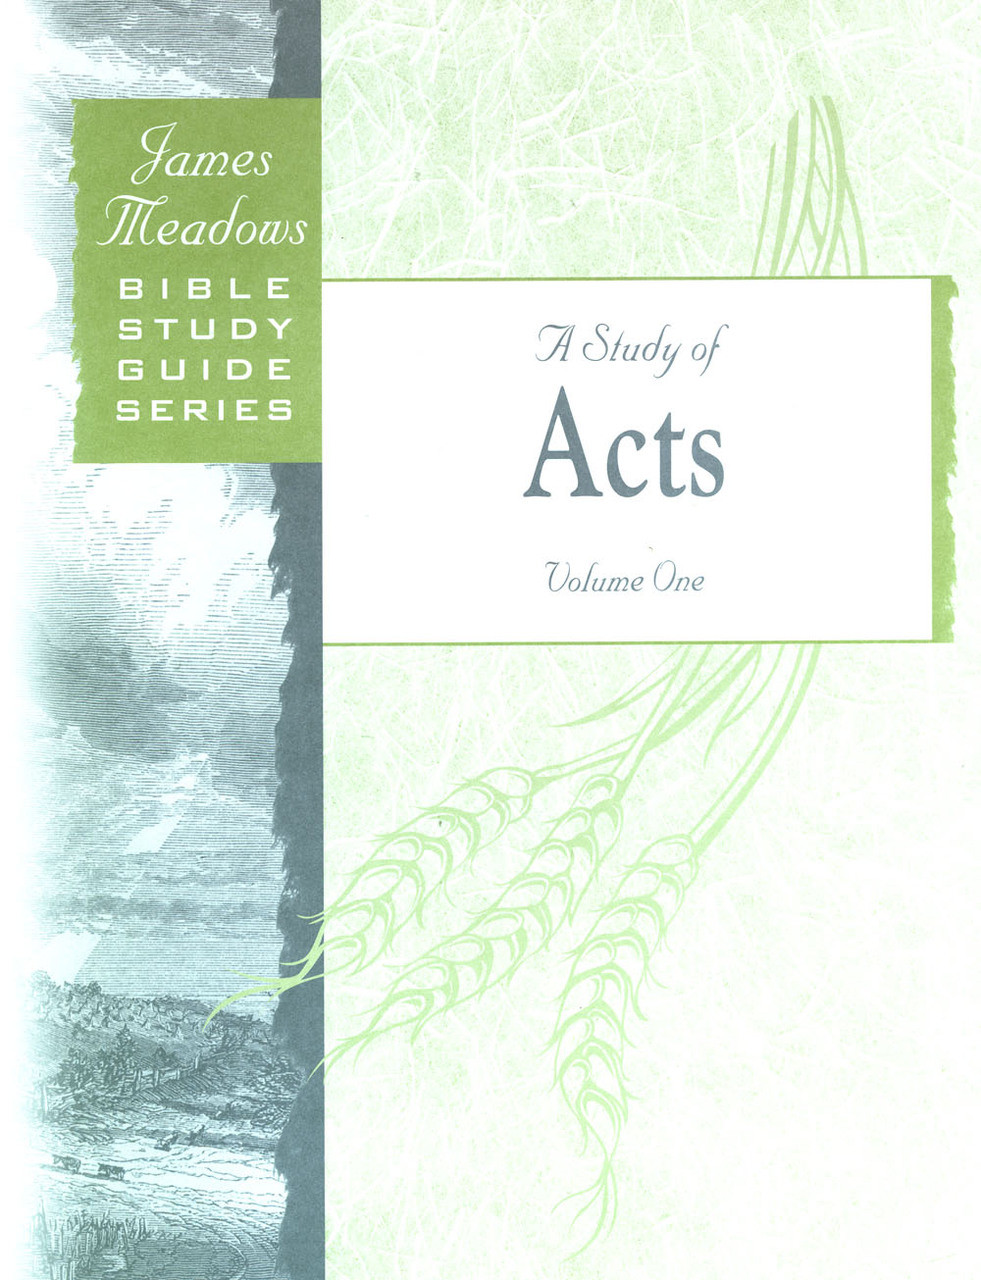 ACTS BIBLE STUDY - Bible Verse Study